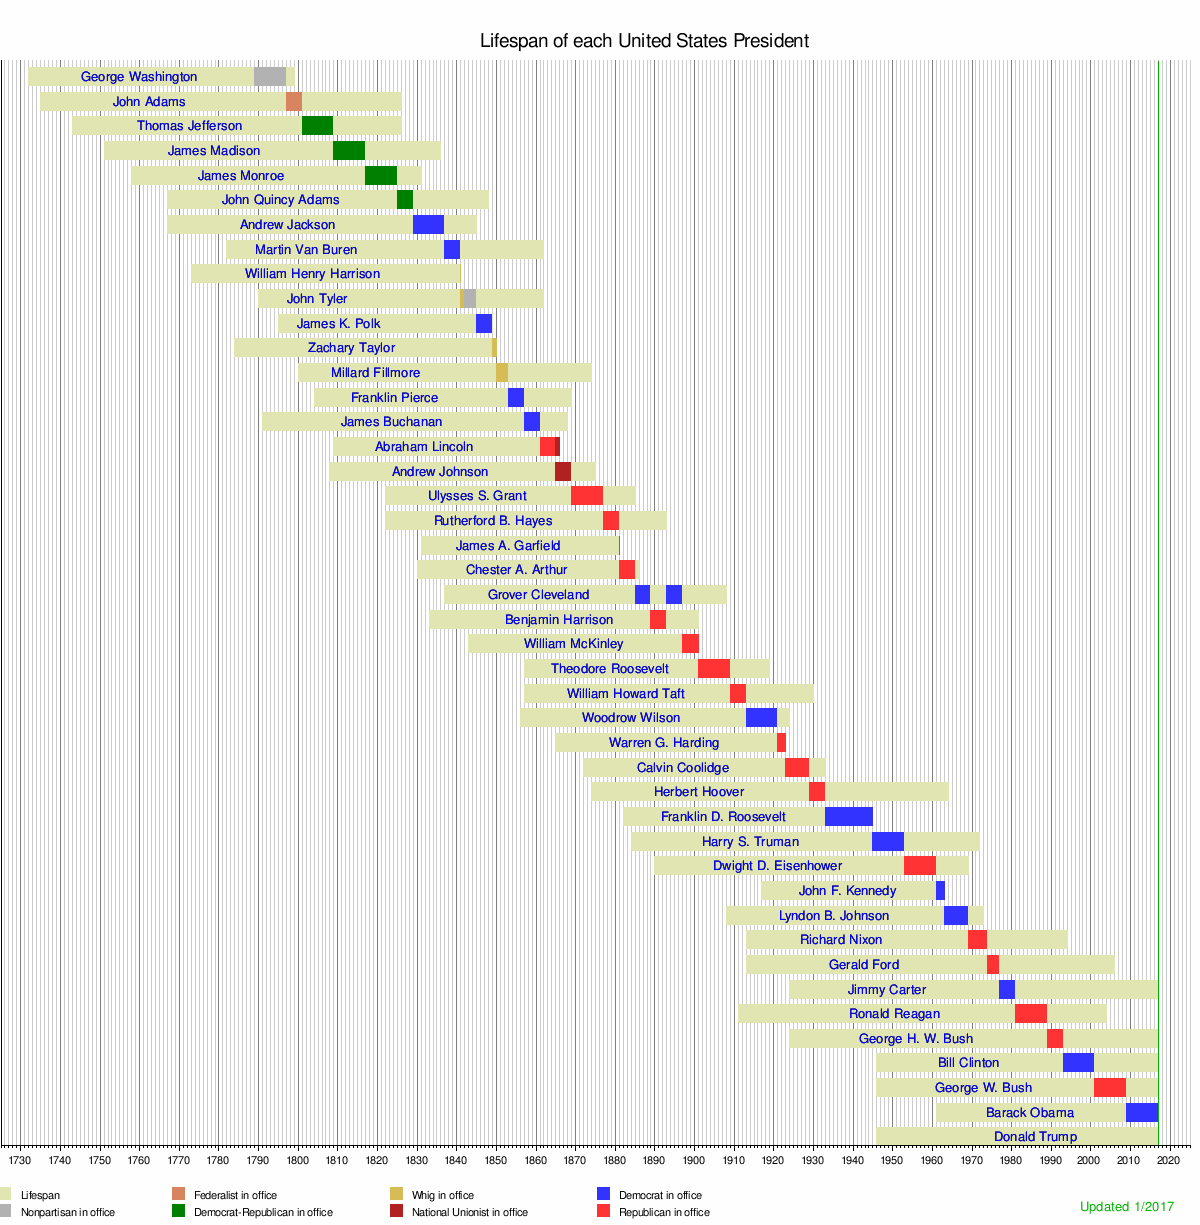 Lifespan timeline of Presidents of the United States - Wikipedia